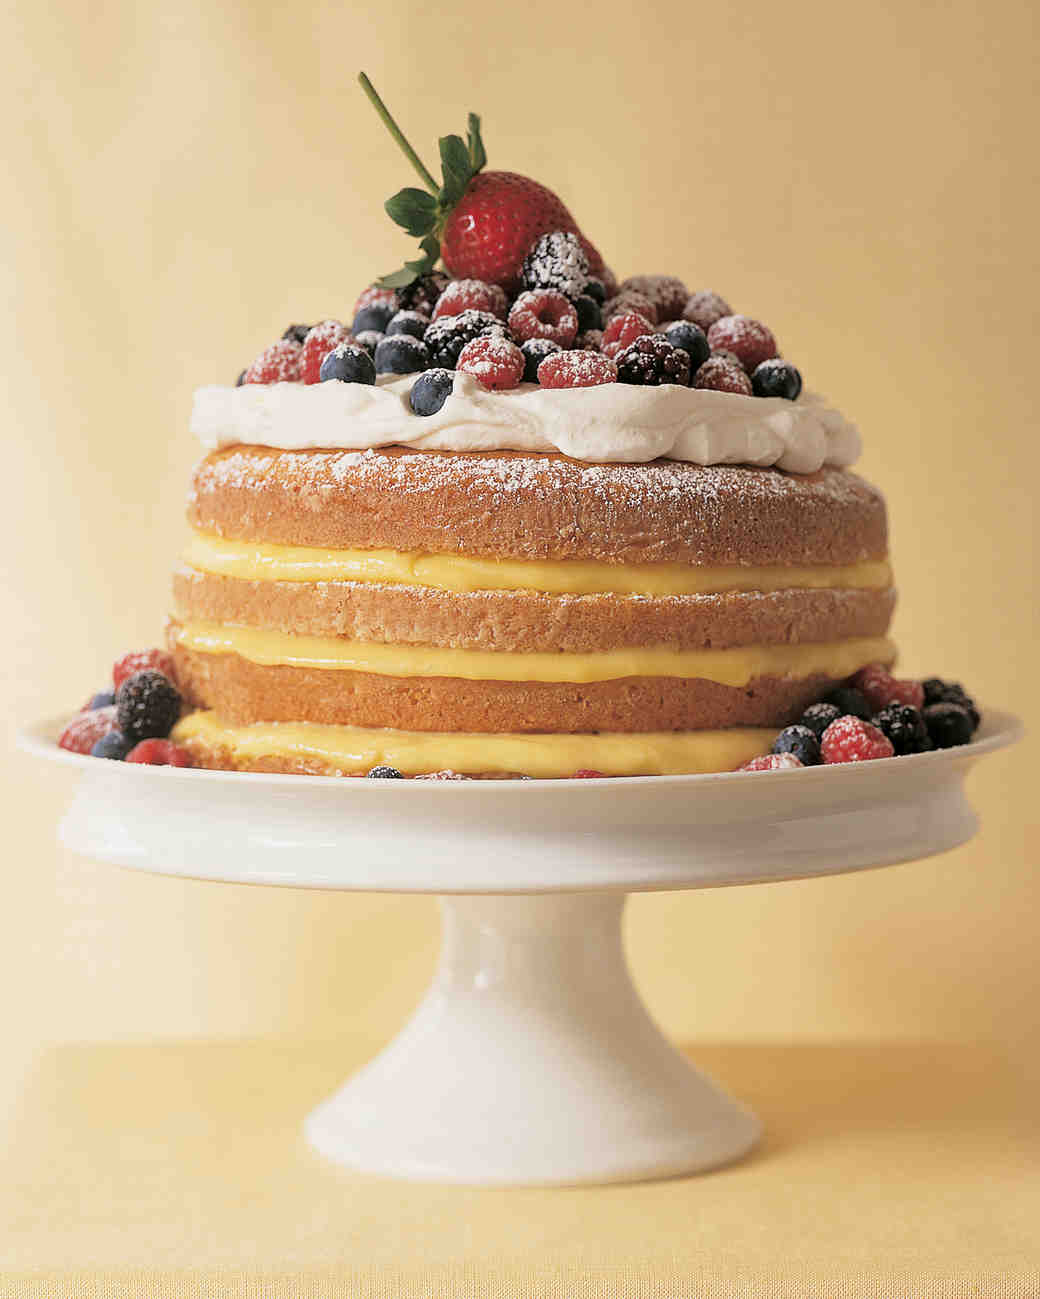 Naked Lemon Cake with Berries